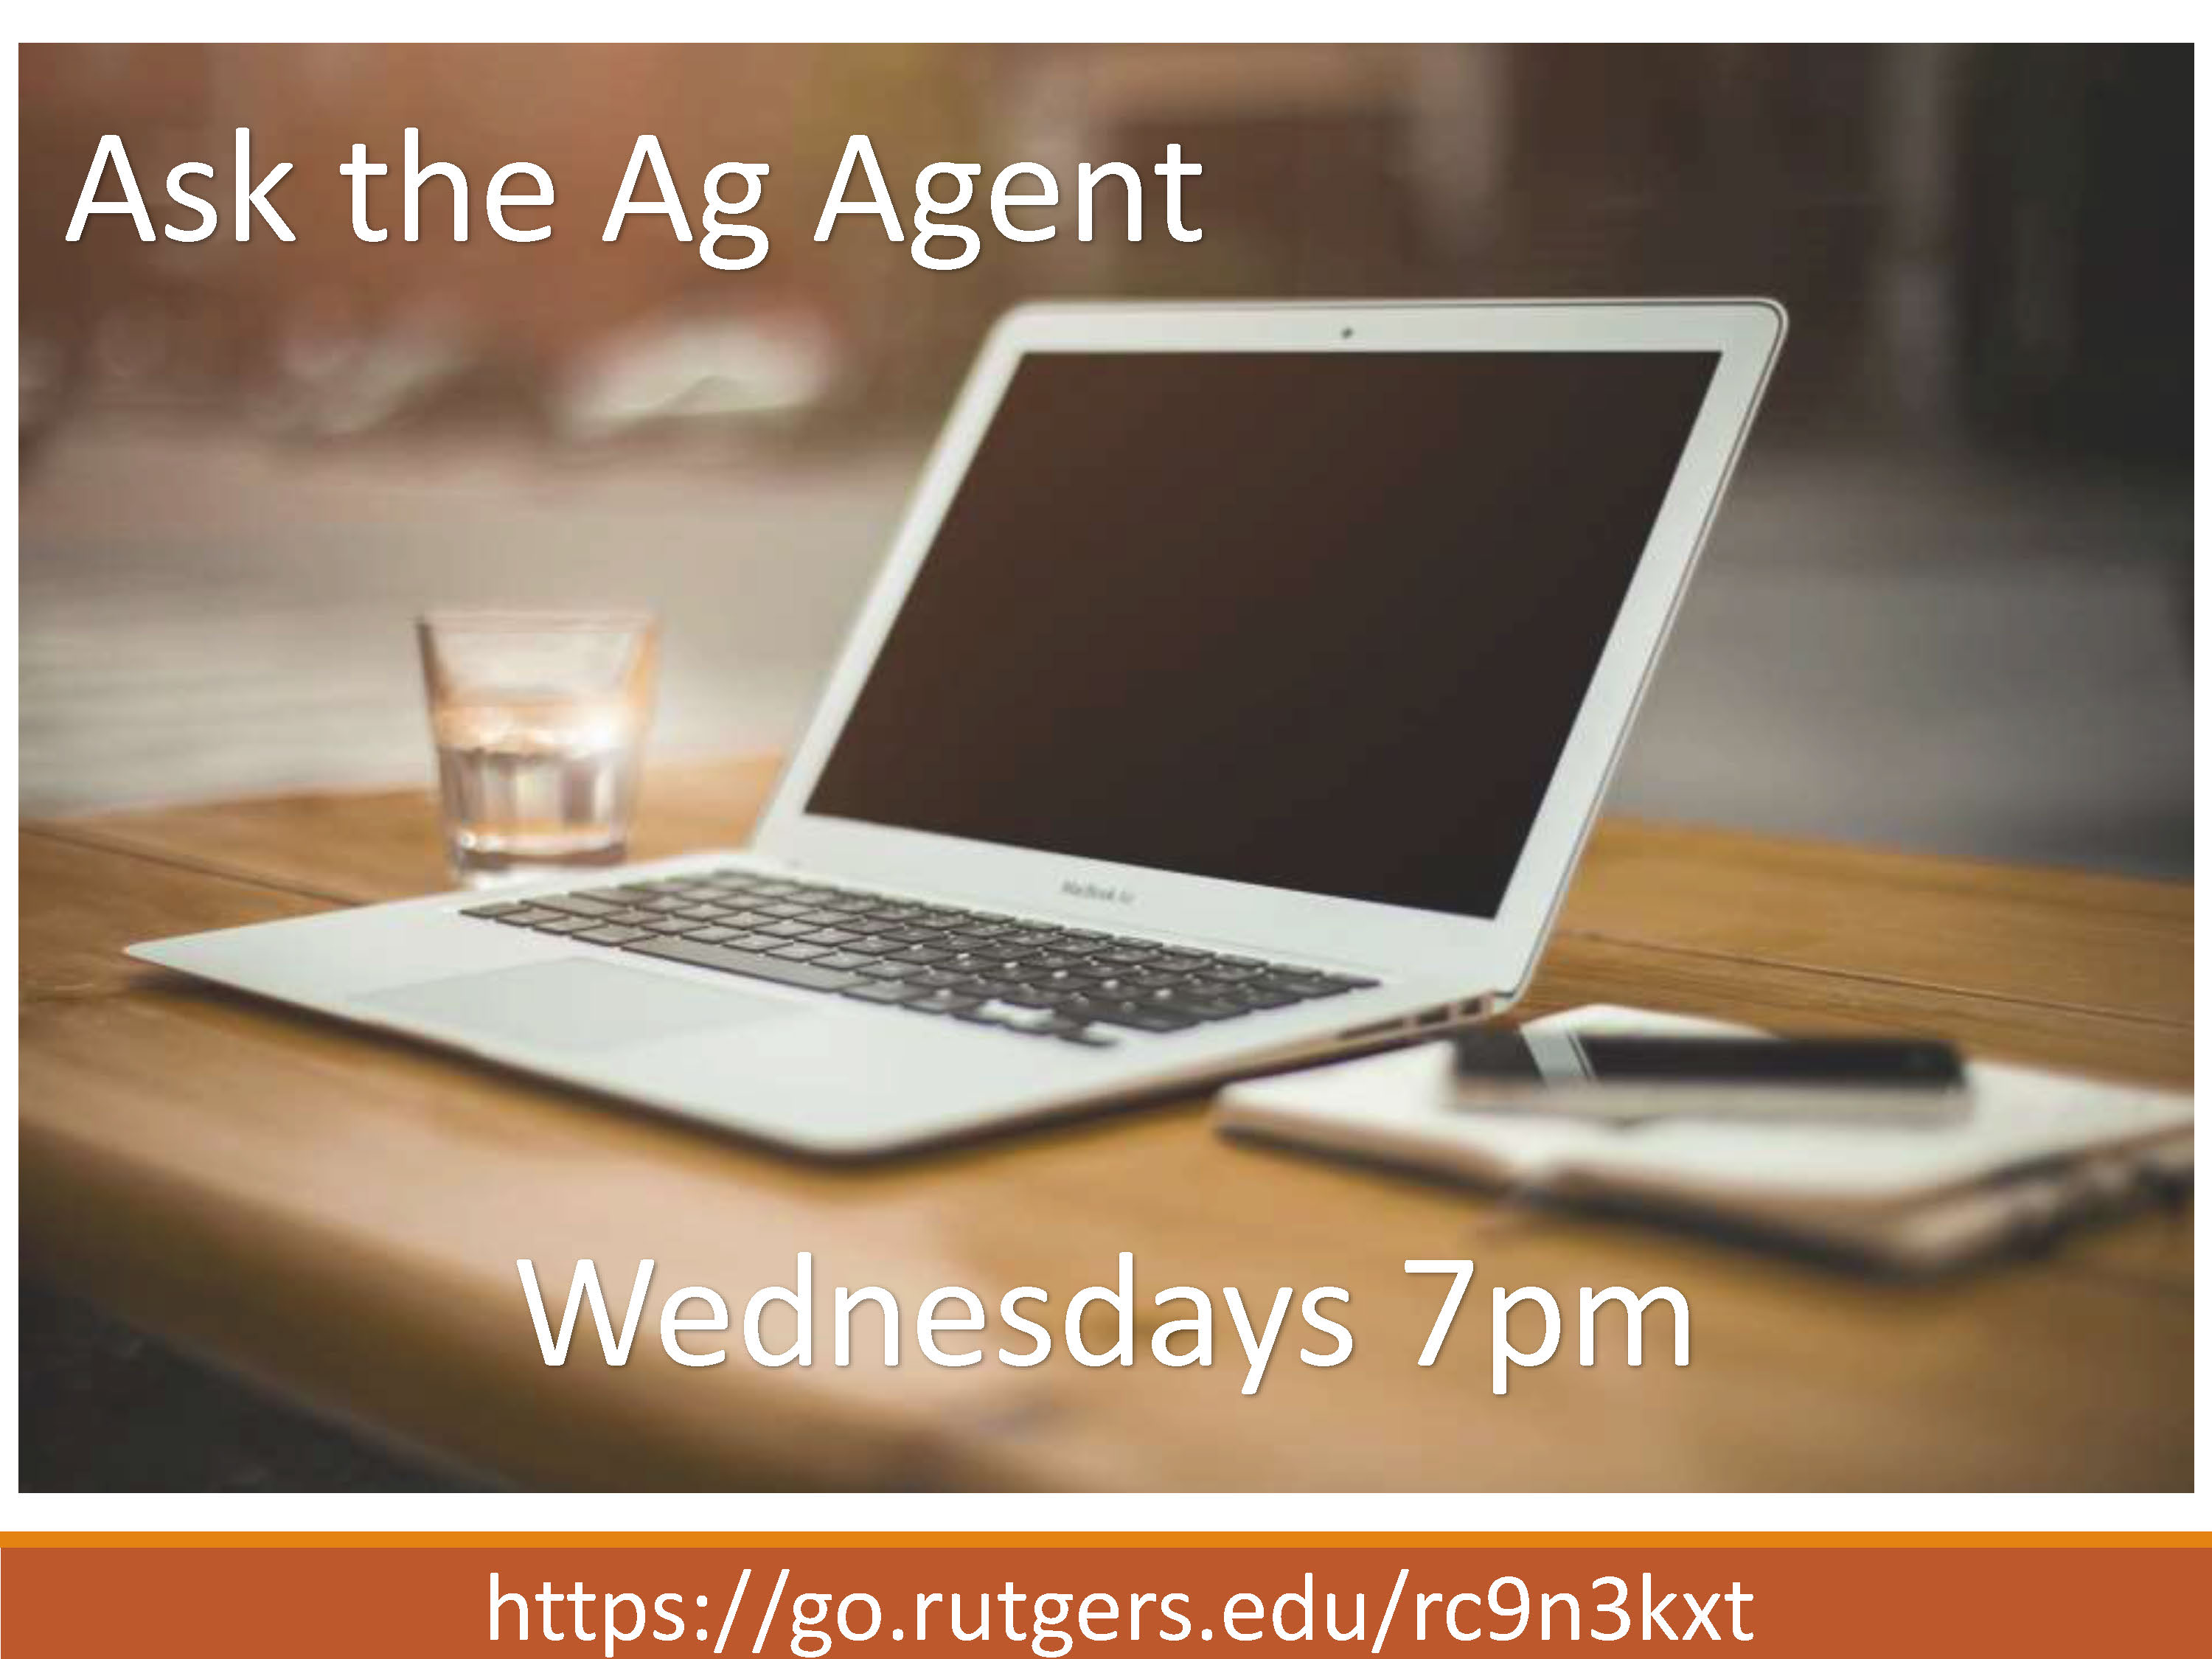 Ask the Ag Agent Promo Image